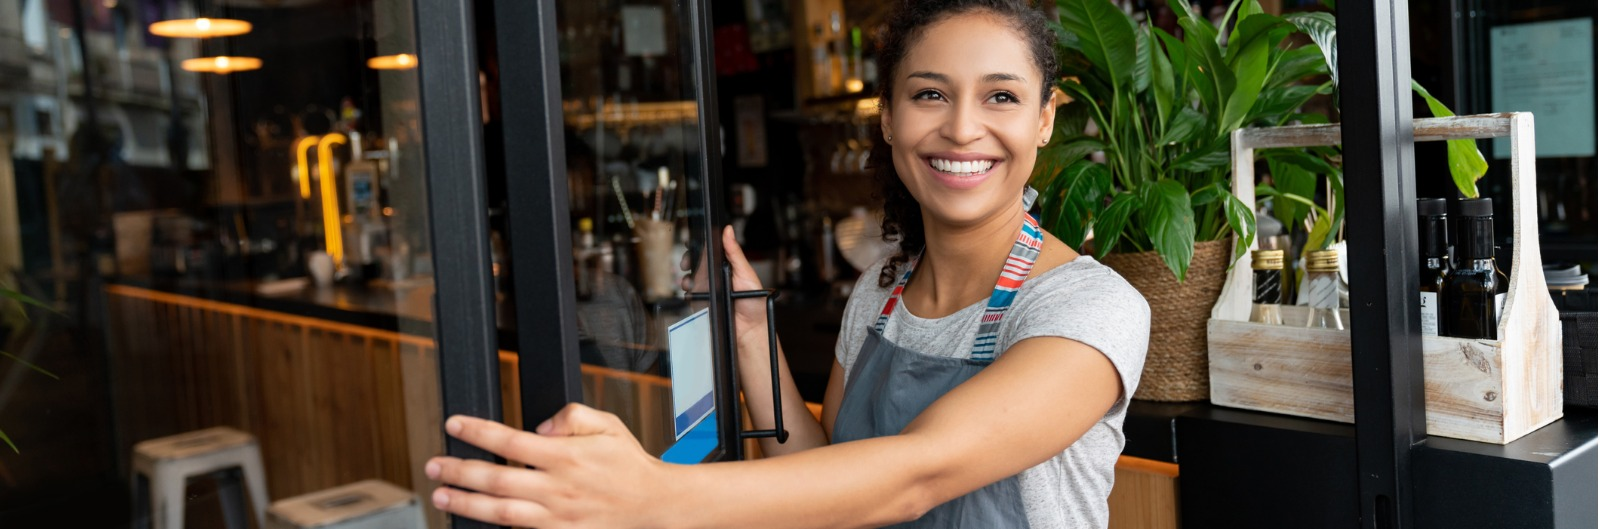 happy-business-owner-opening-the-door-at-a-cafe-picture-1600x529.jpg